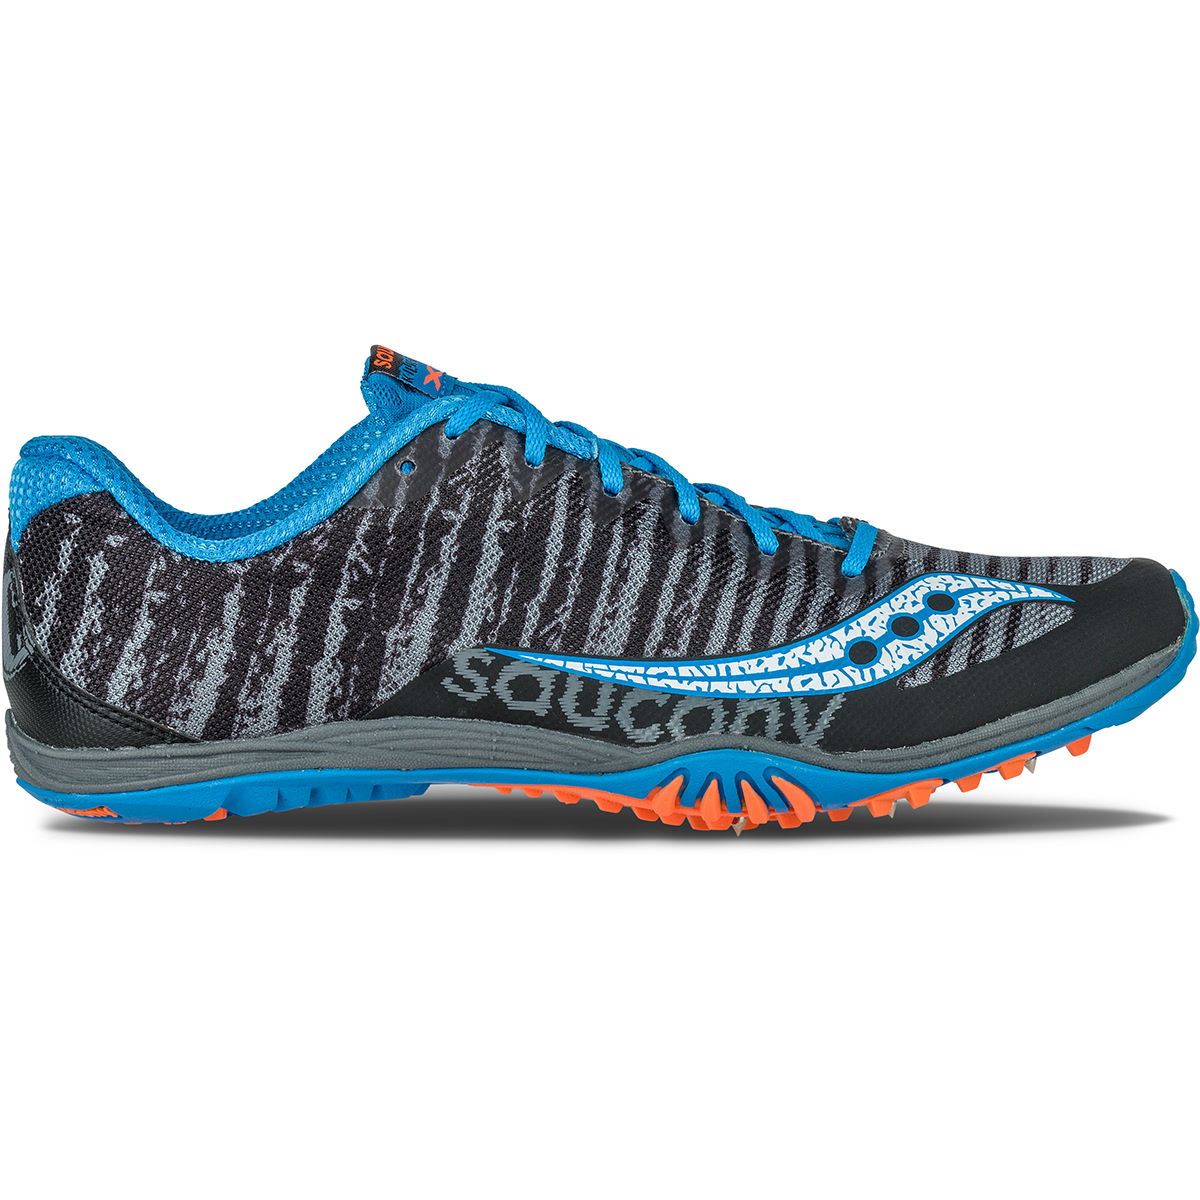 Chaussures de cross-country Saucony Kilkenny (AH16) - 4,5 UK Black/Carolina Chaussures de running à pointes